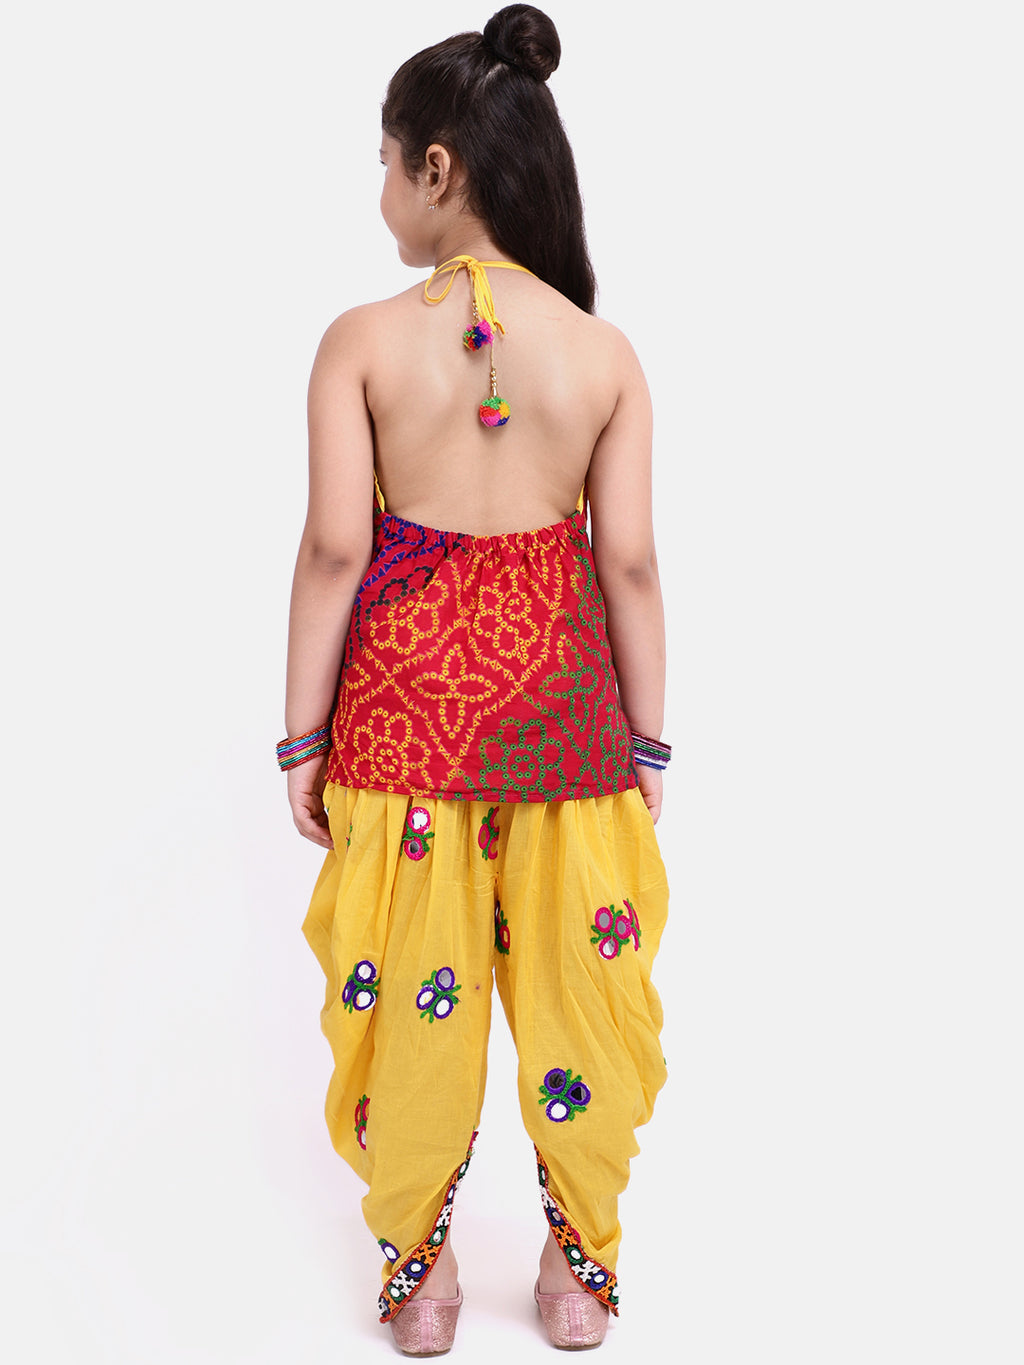 Bandhani Halter Top With Embroidery Dhoti- Yellow